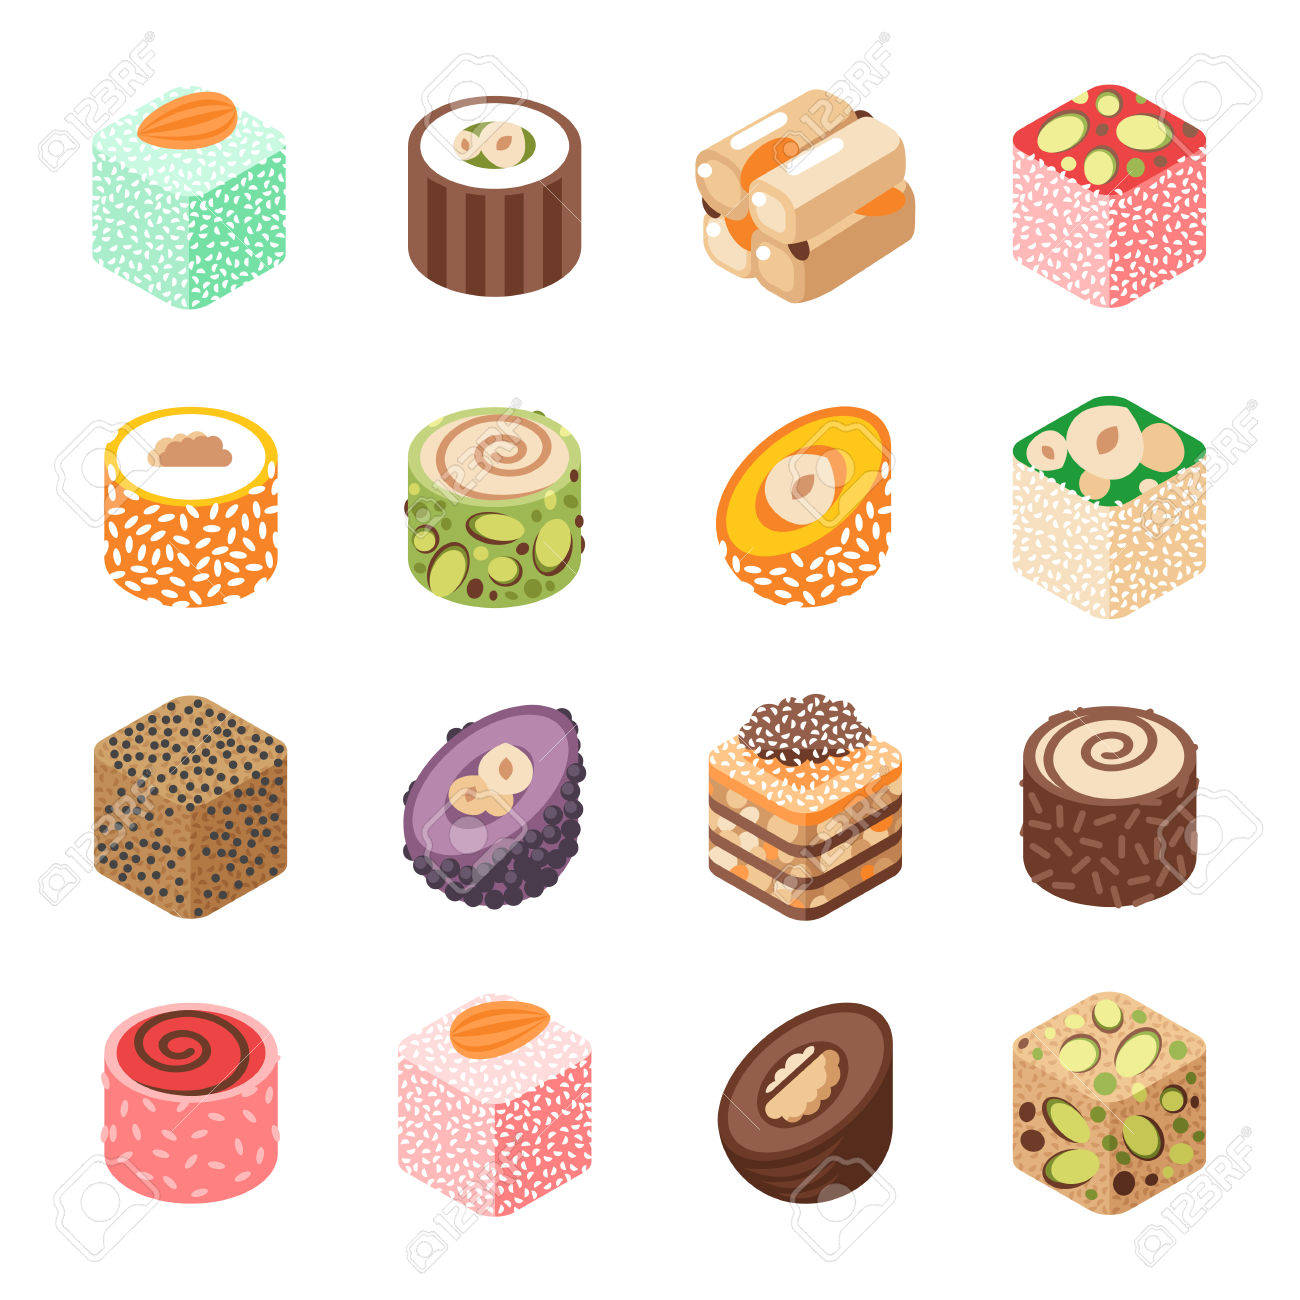 Eastern Sweets Vector. Turkish Baklava Sweet Made With Honey.